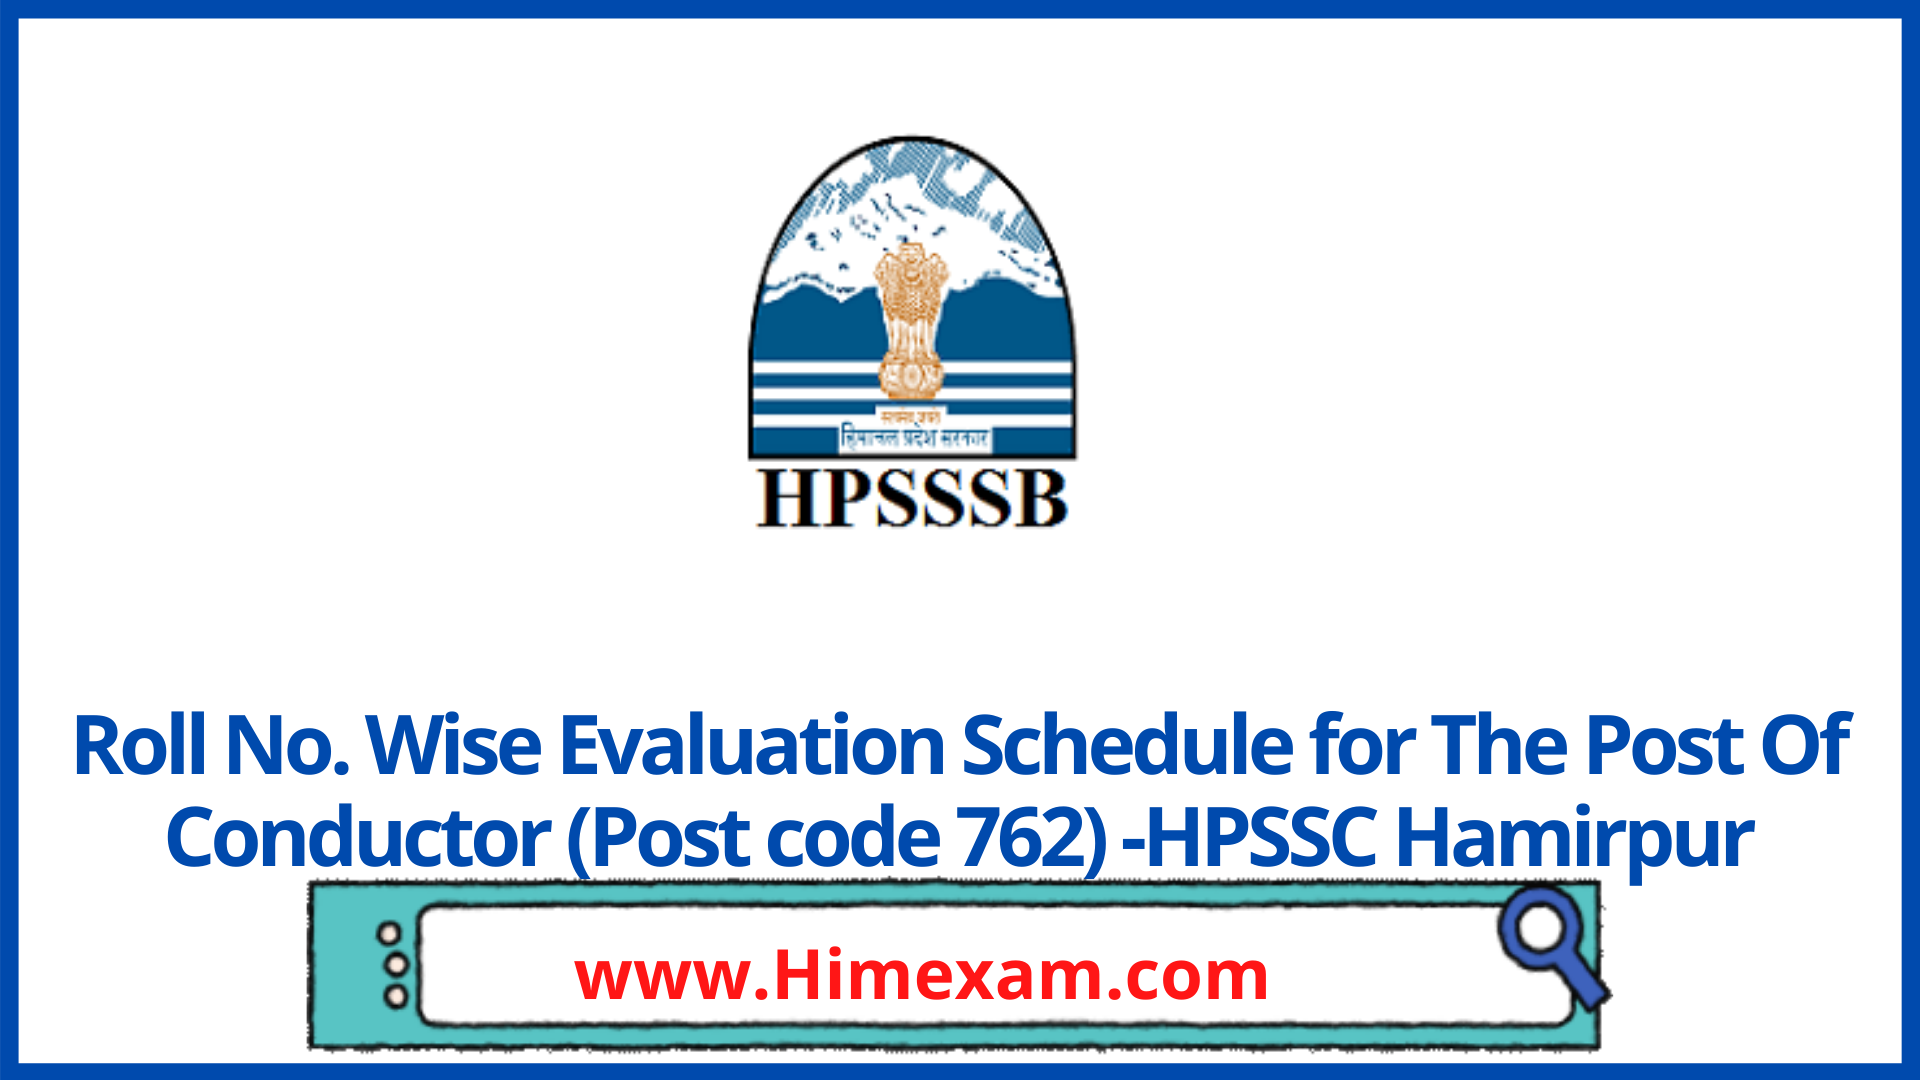 Roll No. Wise Evaluation Schedule for The Post Of Conductor (Post code 762) -HPSSC Hamirpur